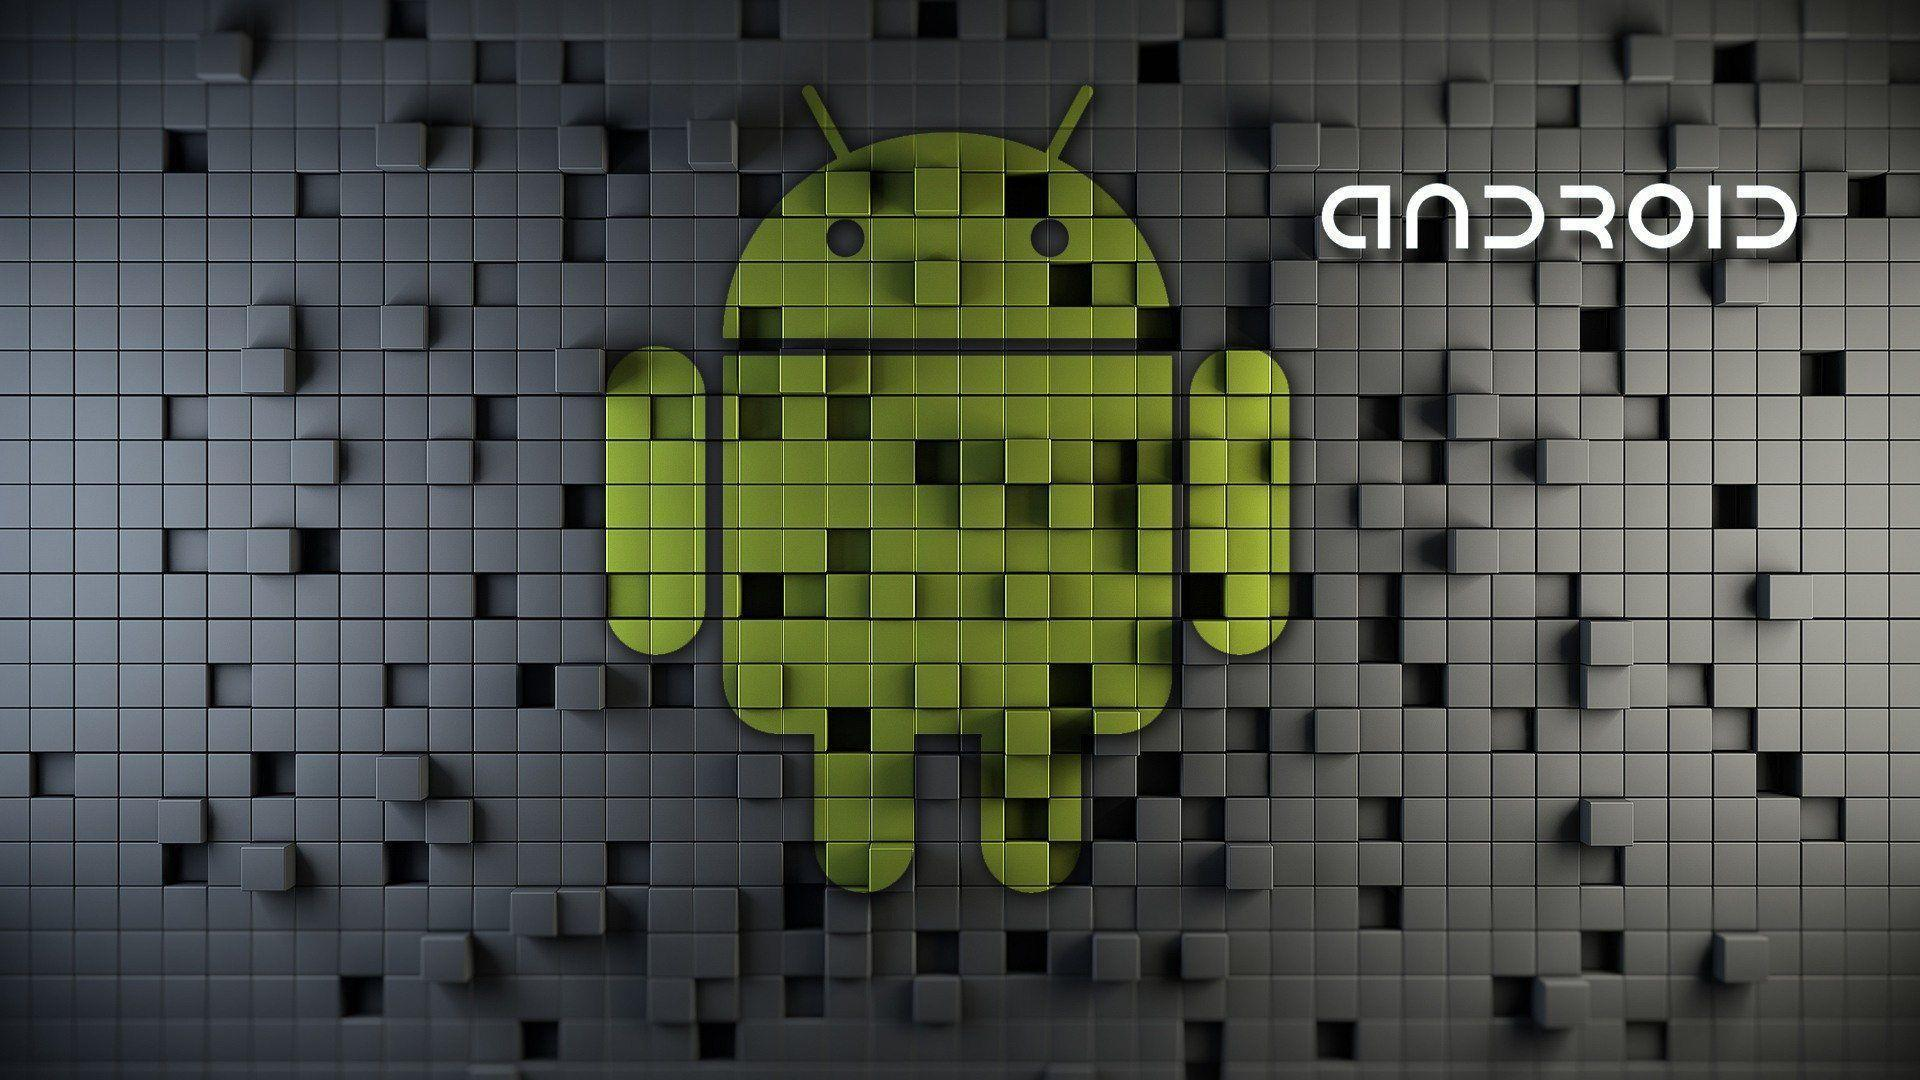 Wallpapers For > Android Logo 3d Wallpapers